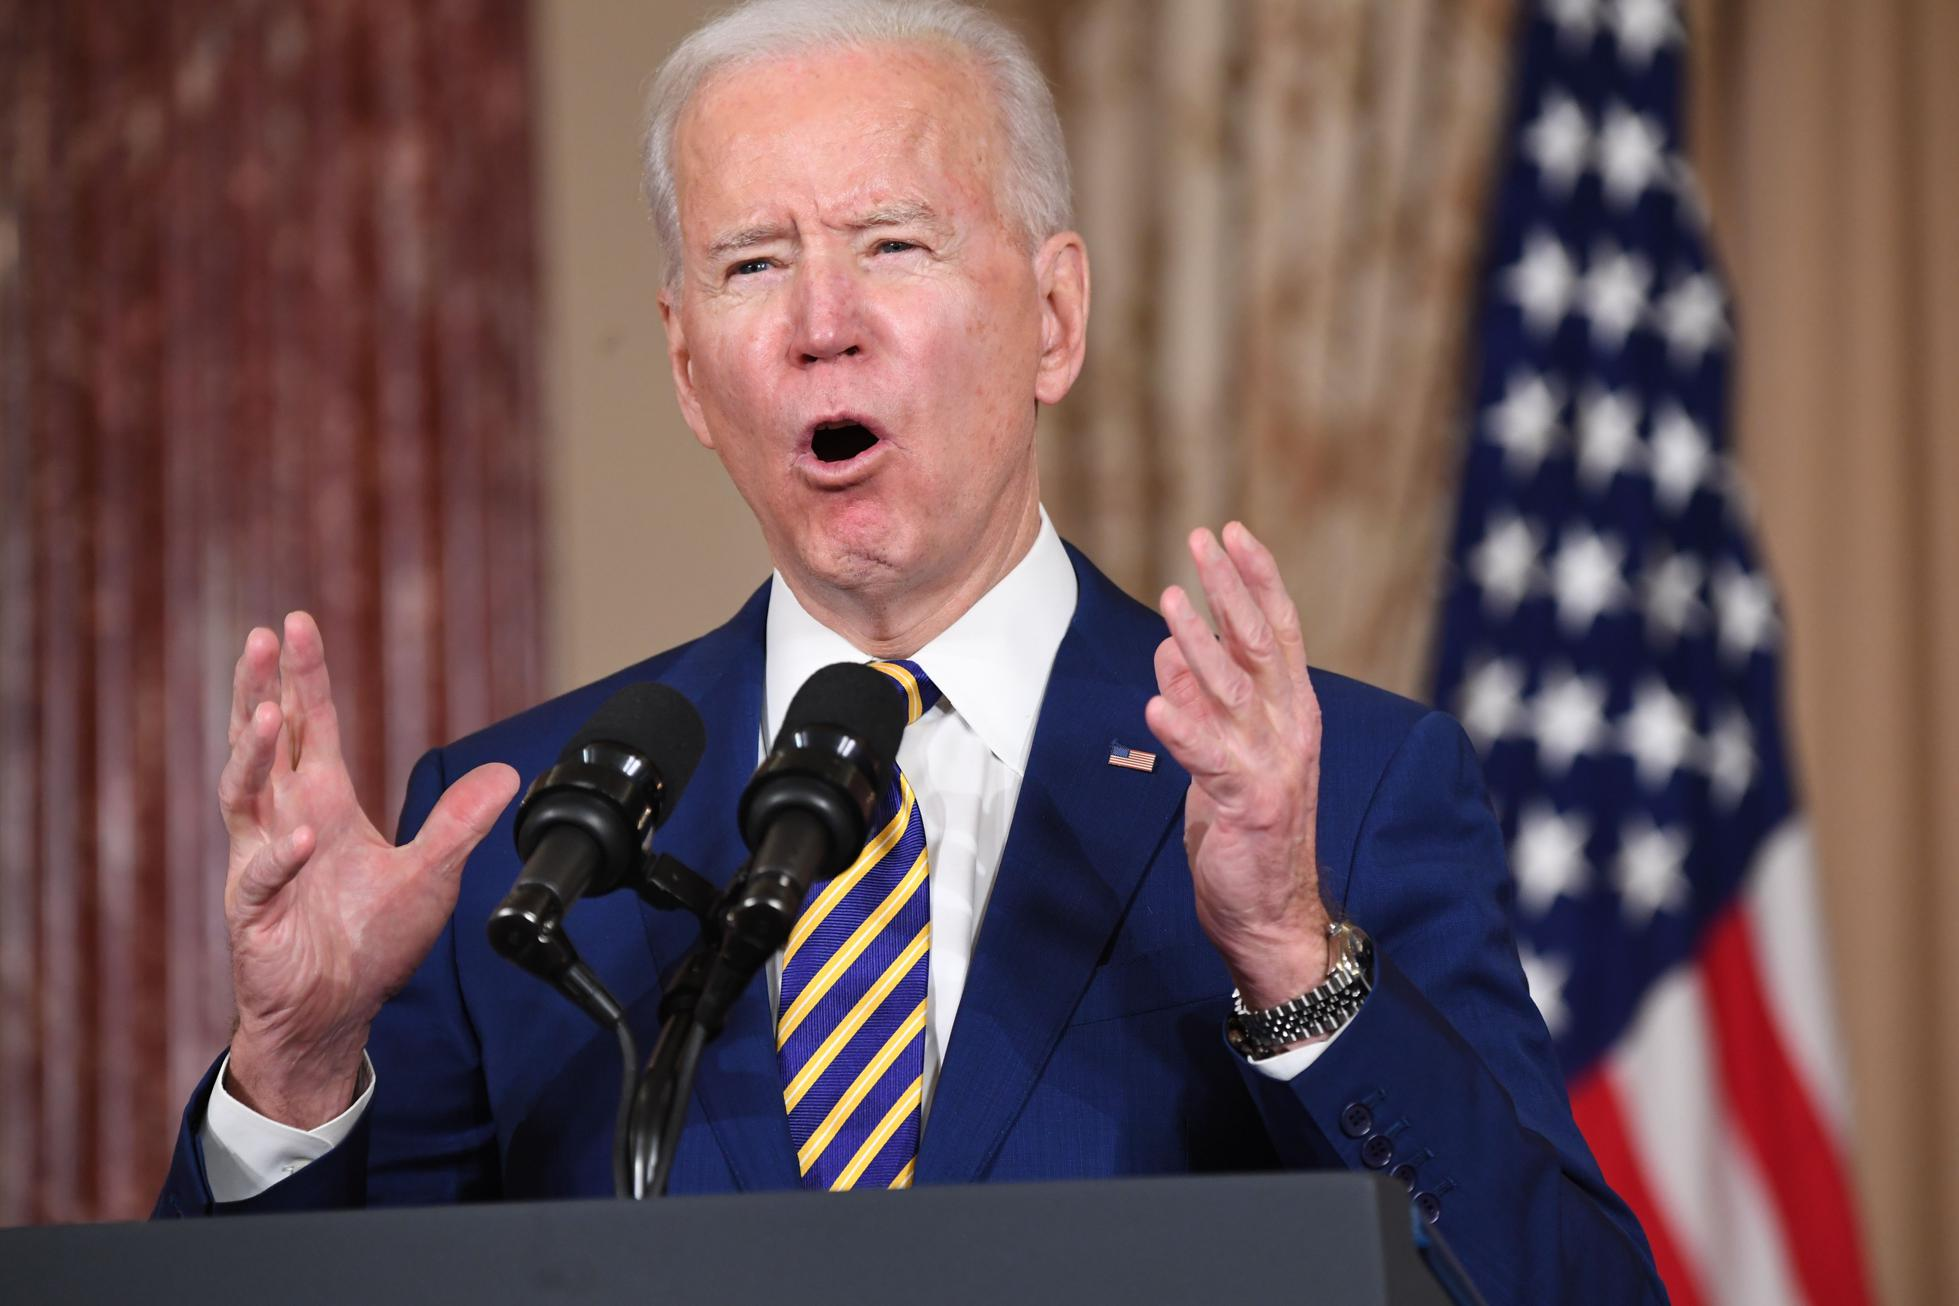 President Biden sanctions Russian cybersecurity company